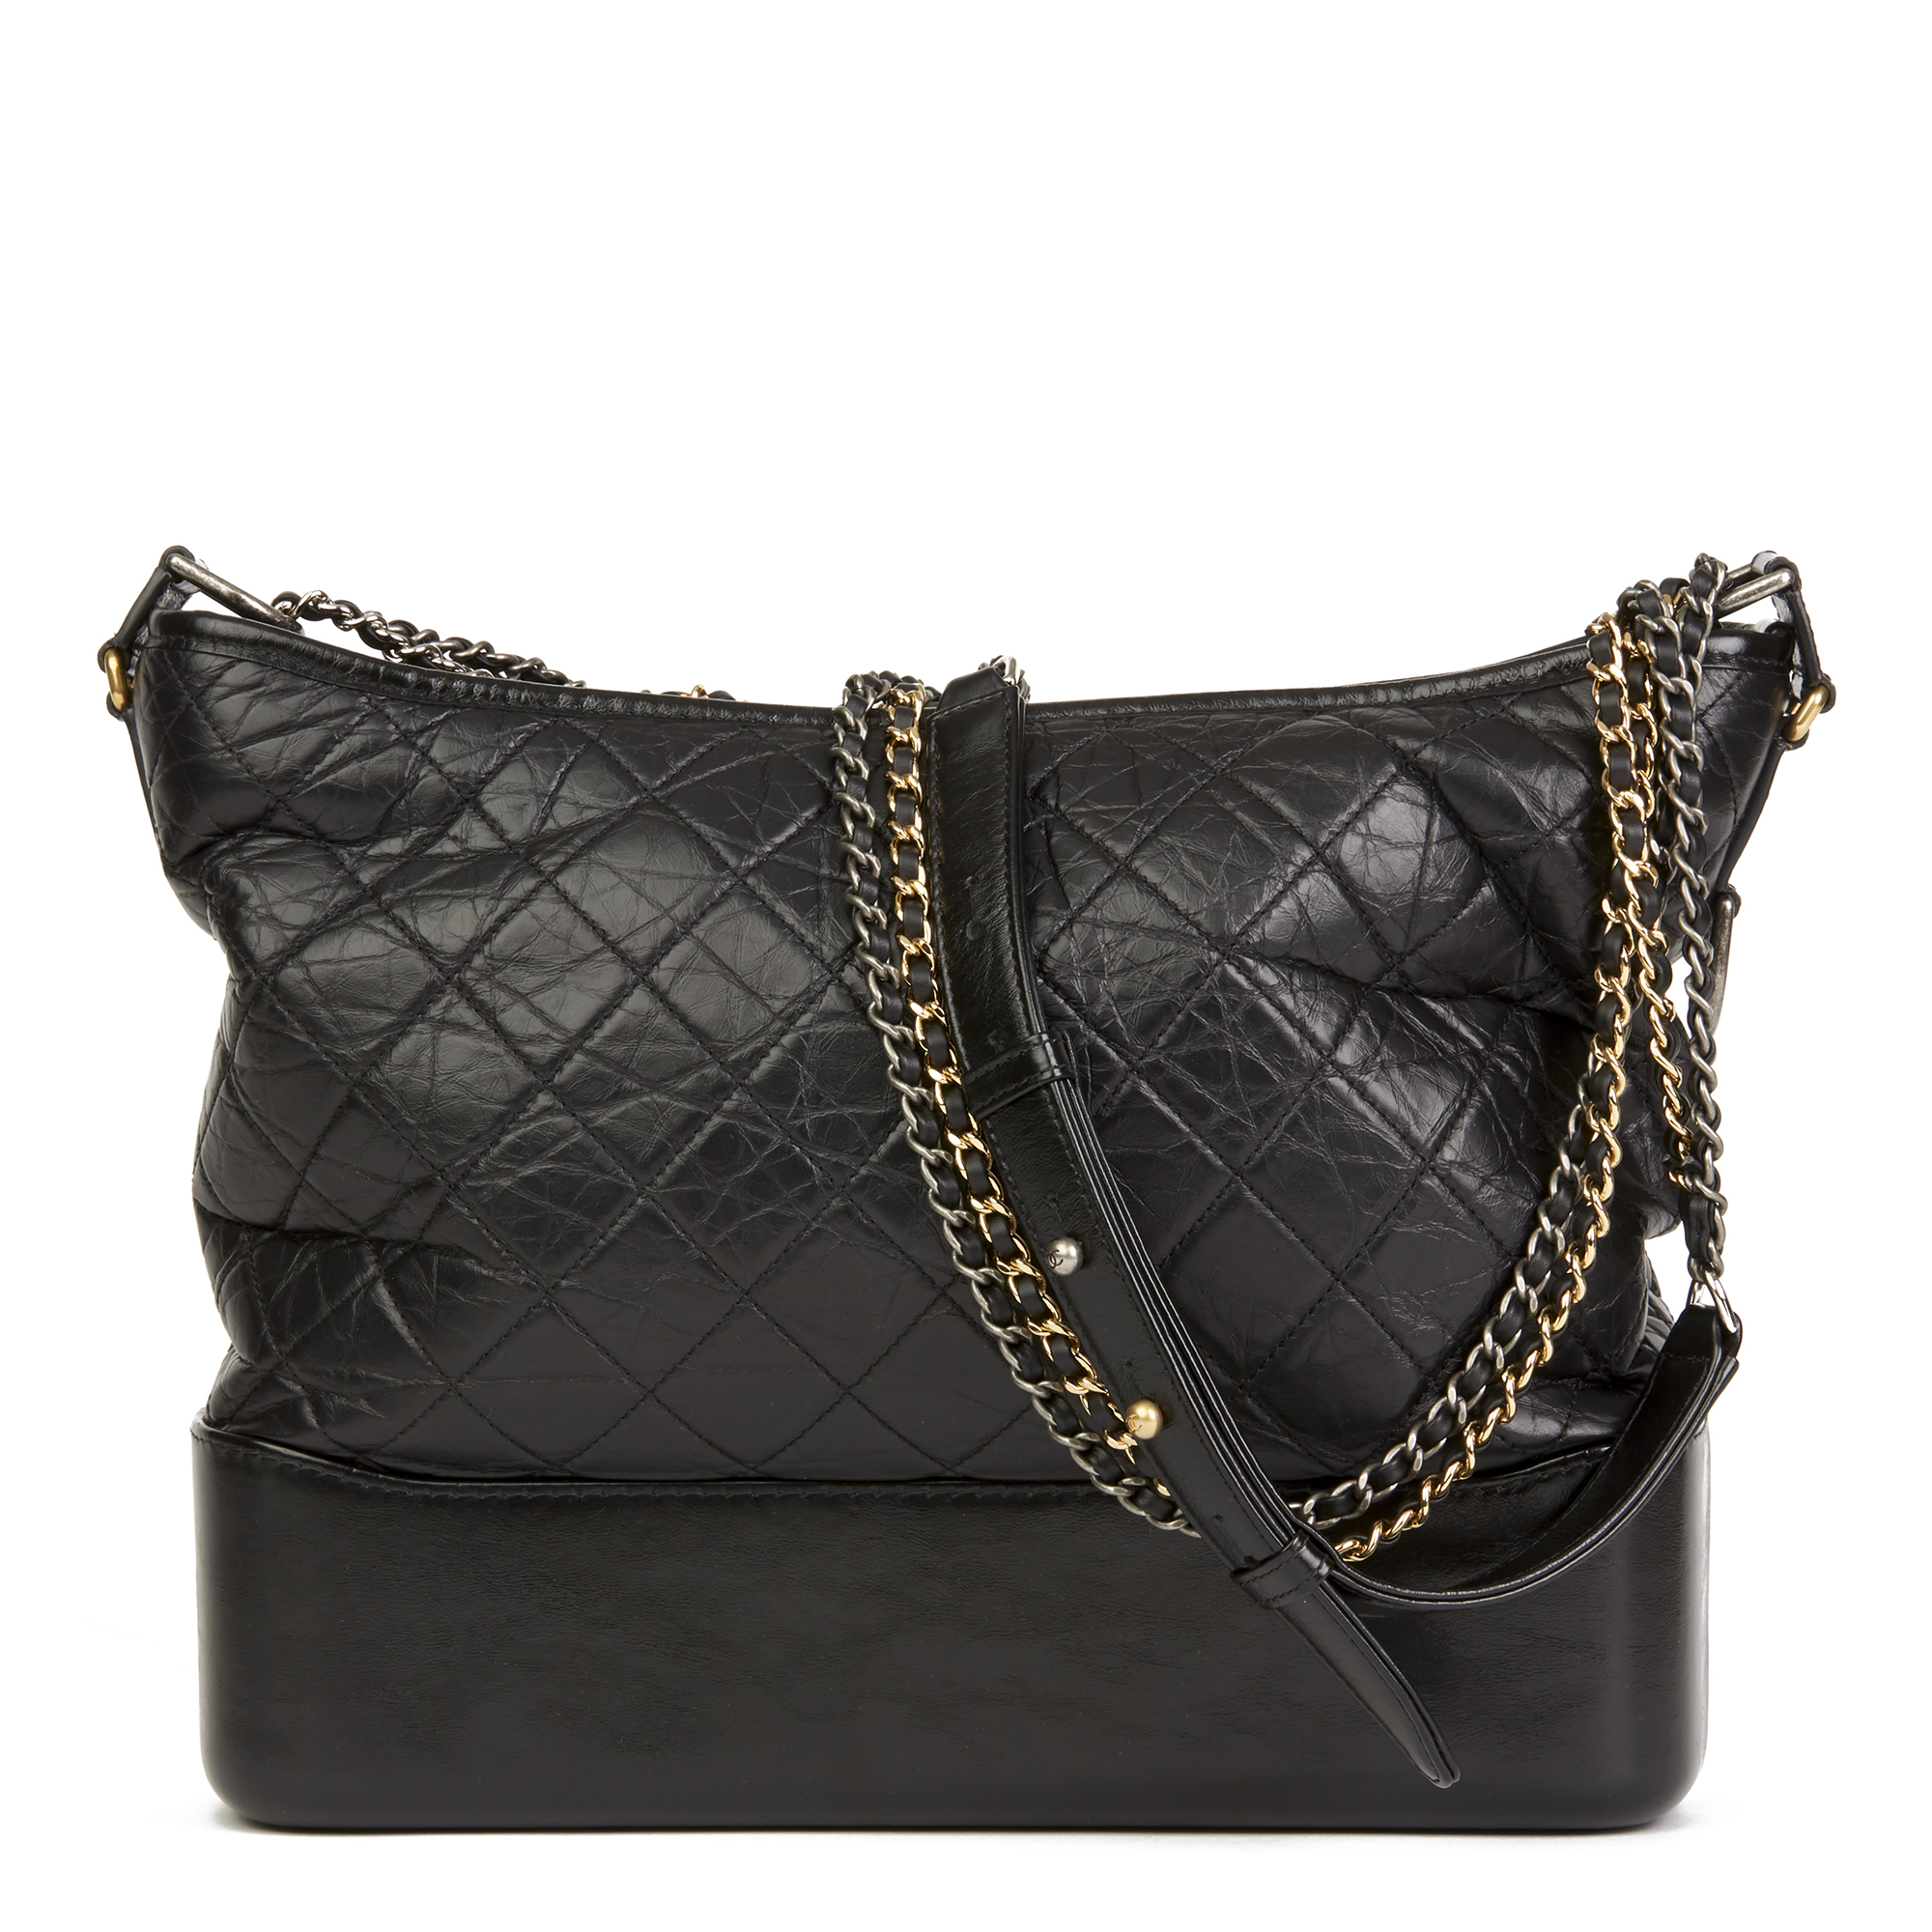 f9da8df92eca2e CHANEL BLACK QUILTED AGED CALFSKIN LEATHER LARGE GABRIELLE HOBO BAG ...